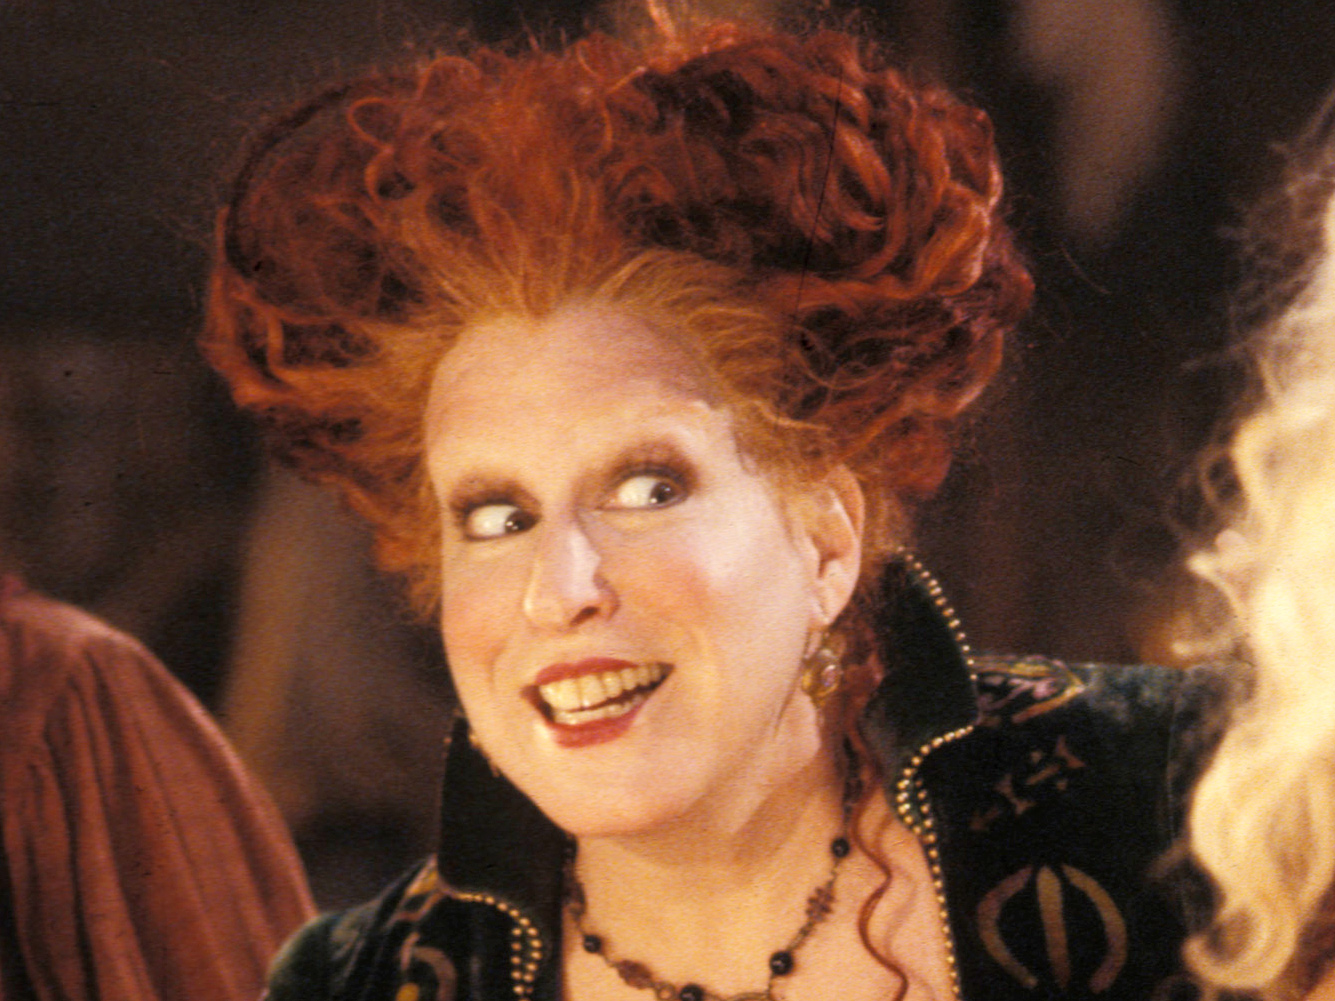 Winifred Sanderson from Hocus Pocus